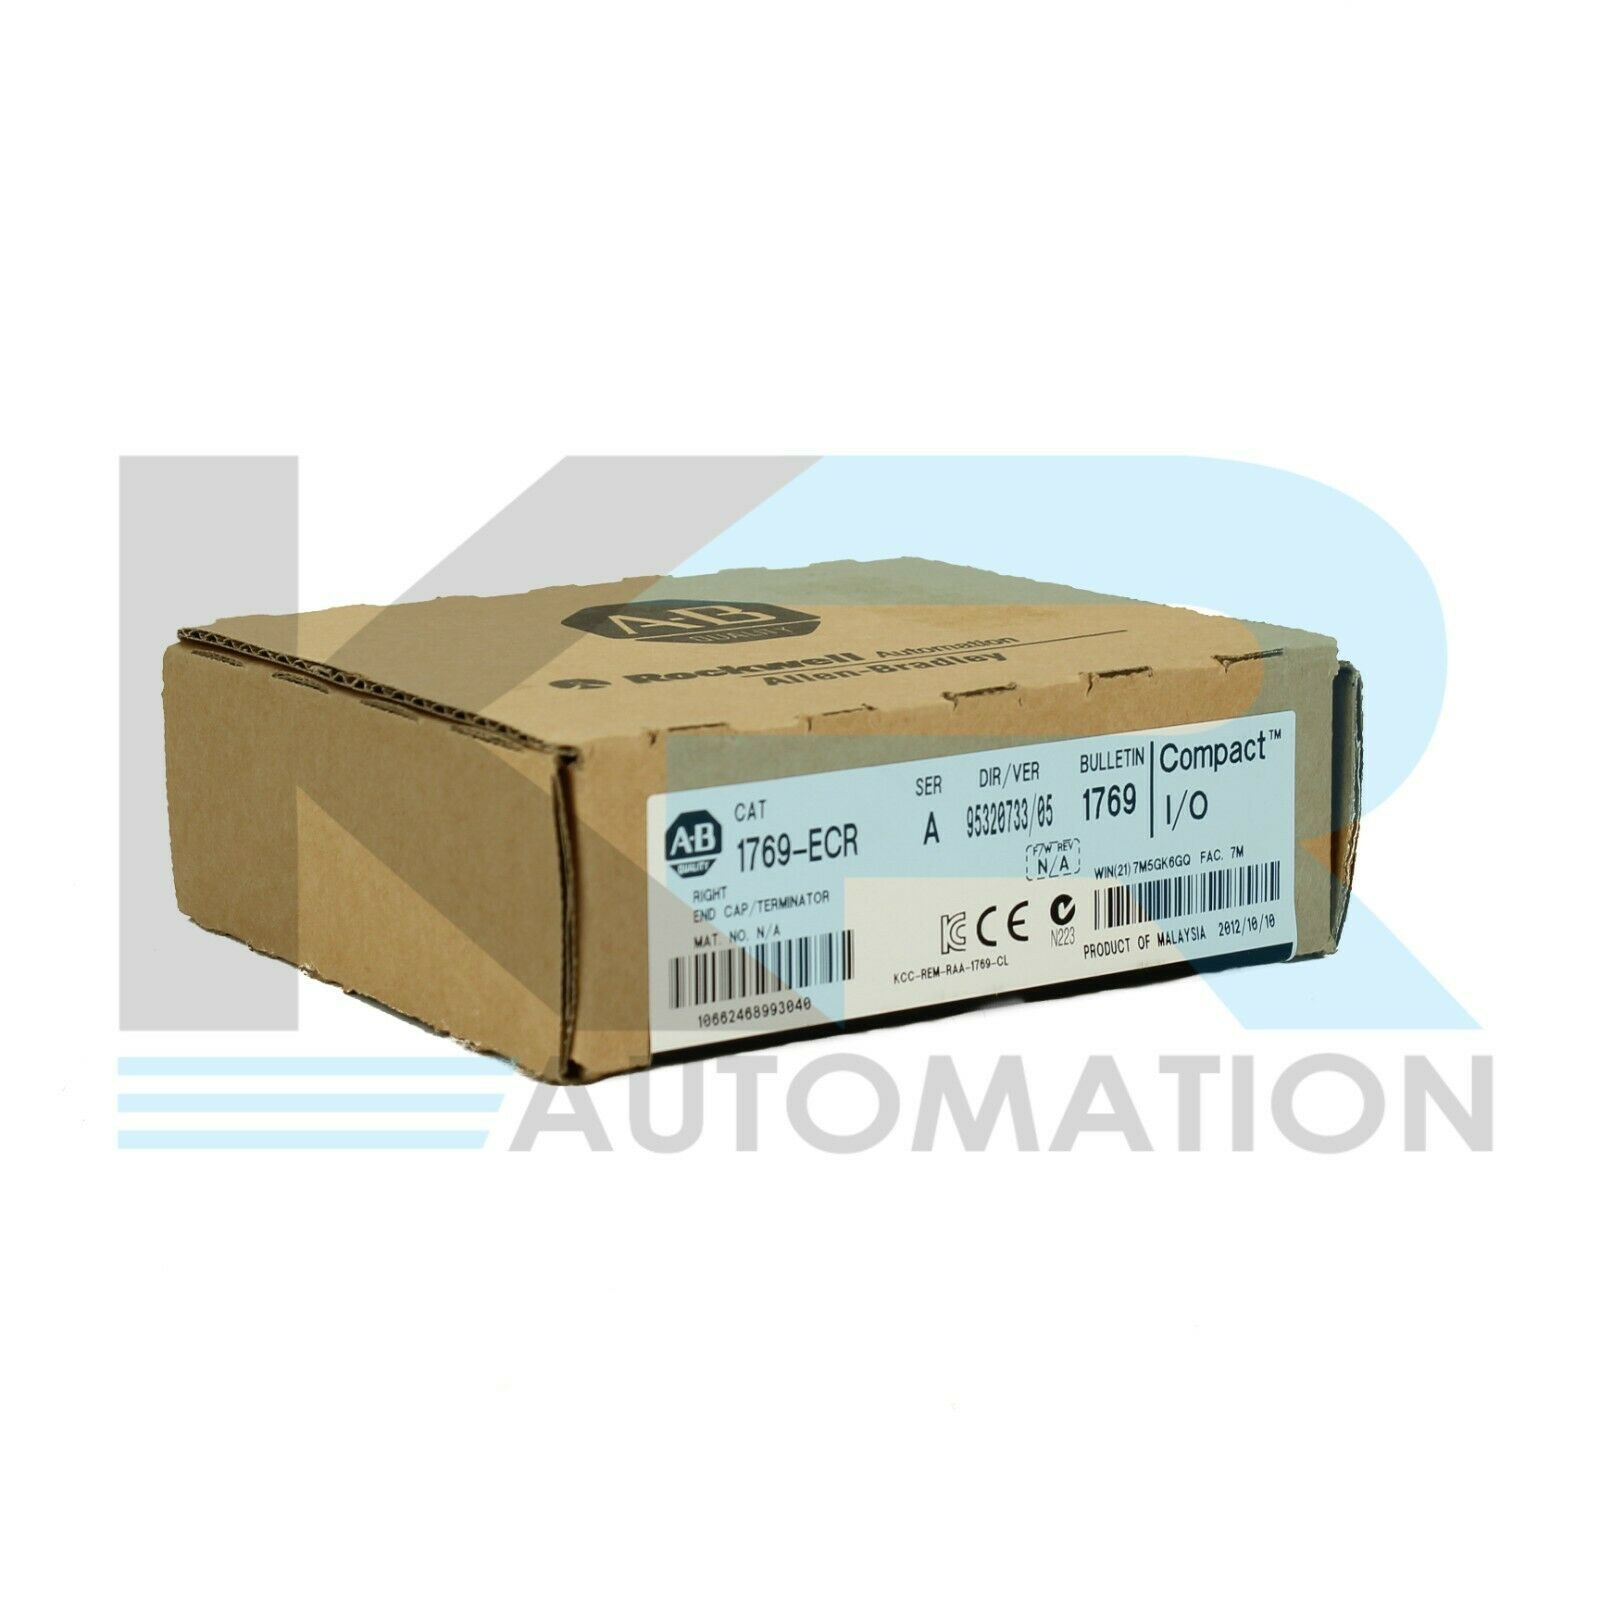 NEW Allen Bradley 1769-ECR /A Compact I/O Right End Cap/ Terminator